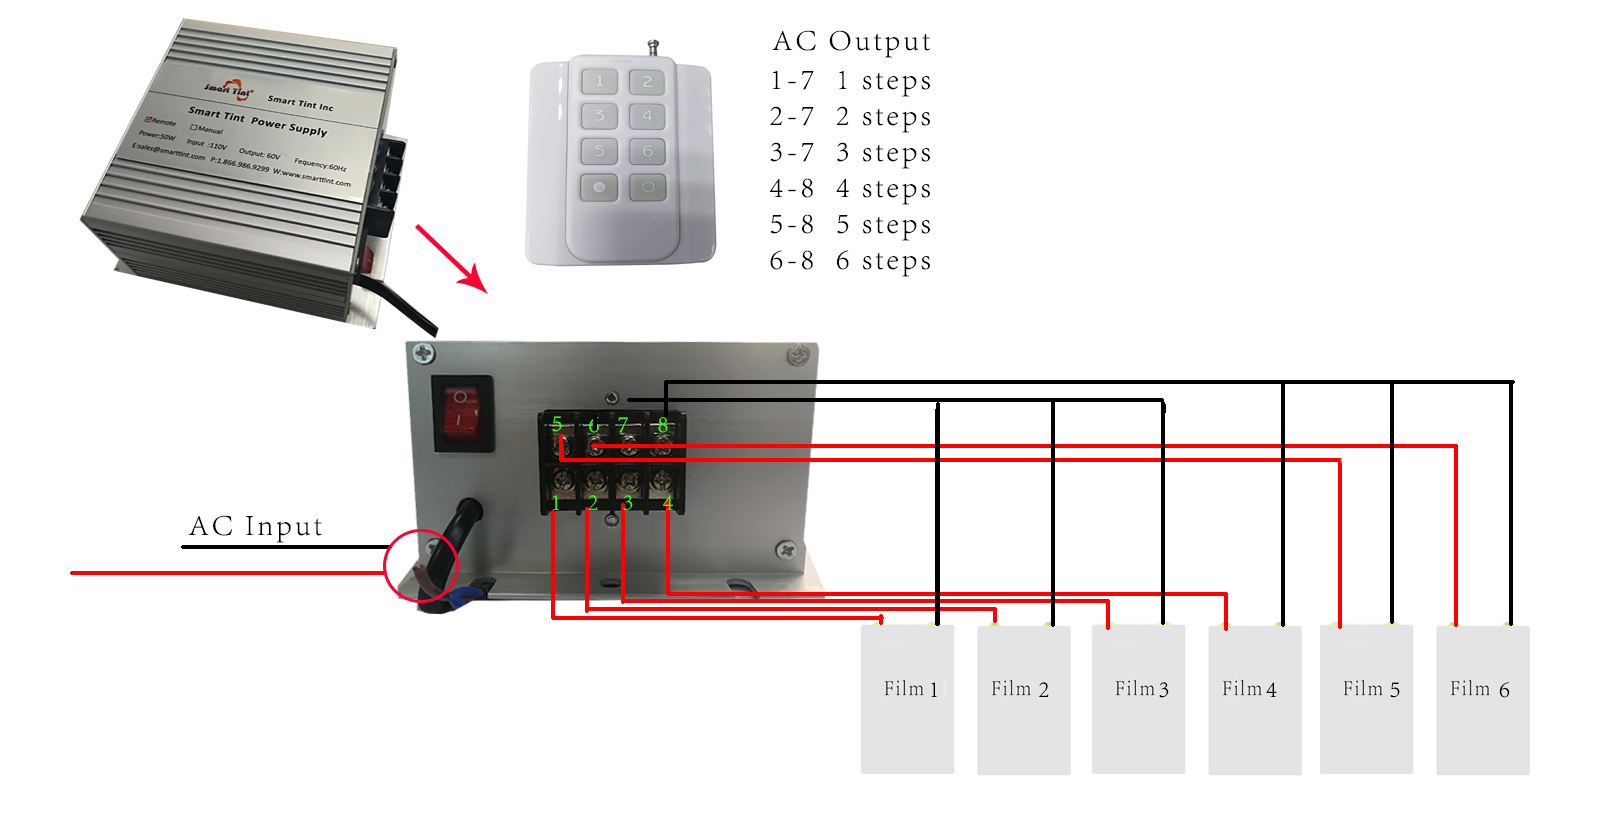 Smart Tint Tuned Power Control Unit With Remote Wire E40 Wiring Diagrams Gm Multiple Function